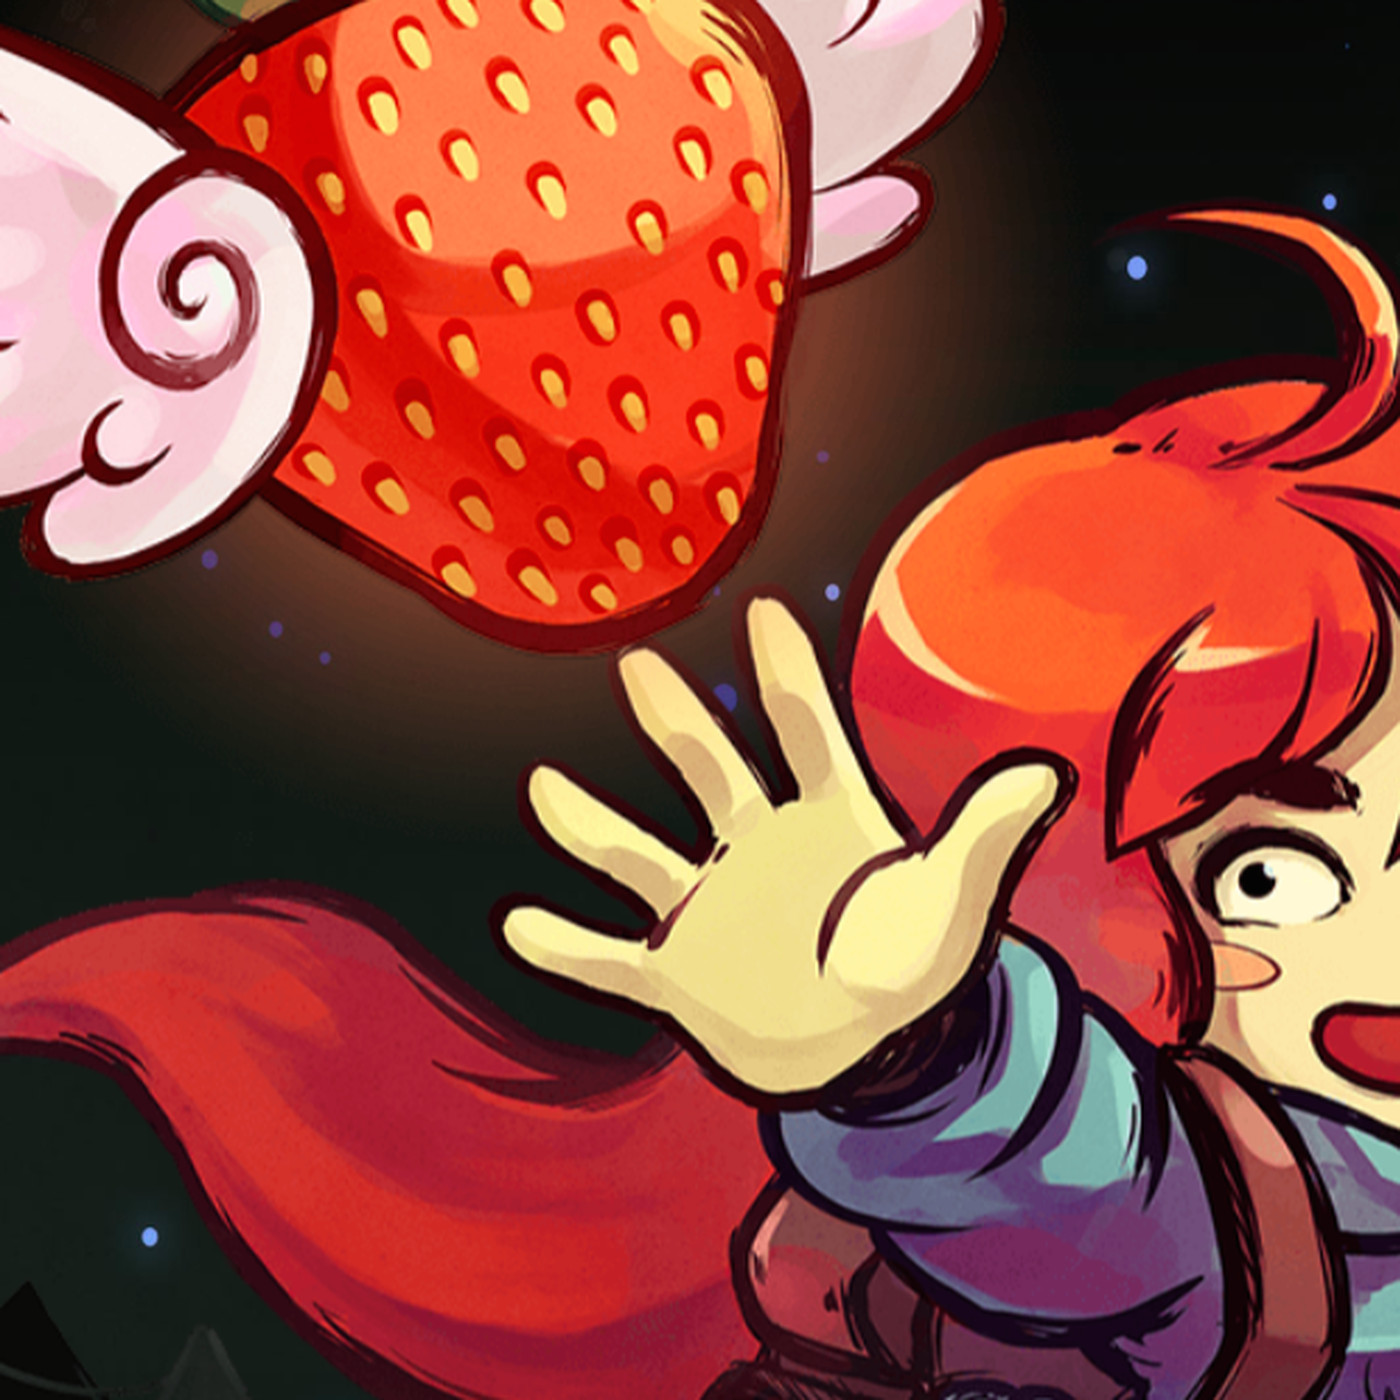 Hyper difficult platformer Celeste on hard mode is like watching     Hyper difficult platformer Celeste on hard mode is like watching ballet    Polygon